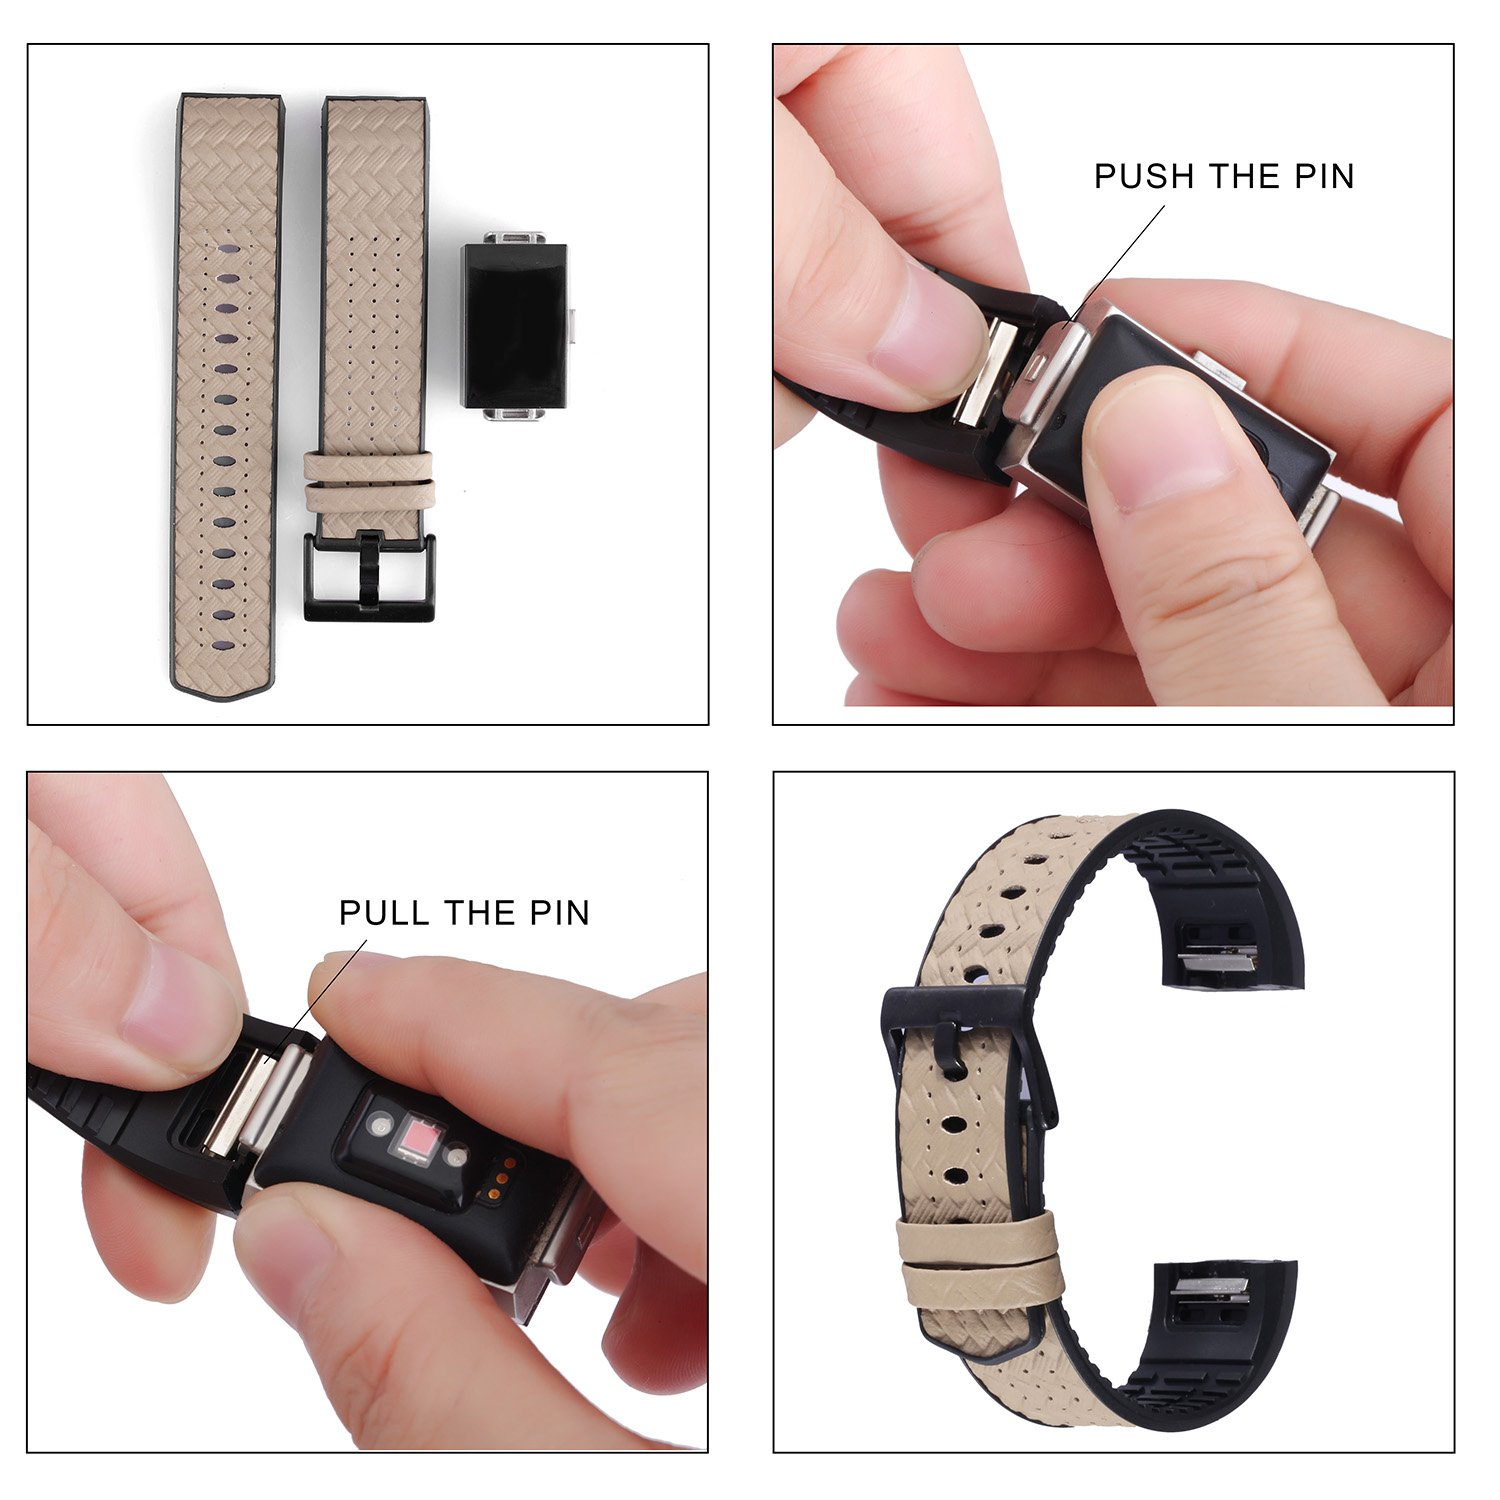 Fitbit Charge 2 Bands for Men&Women, greatgo Replacement Leather TPU Wristbands Accessories Adjustable Large Small Breathable Bracelet Strap with Metal Buckle Clasp for Fitbit Charge 2 Watch (Grey)